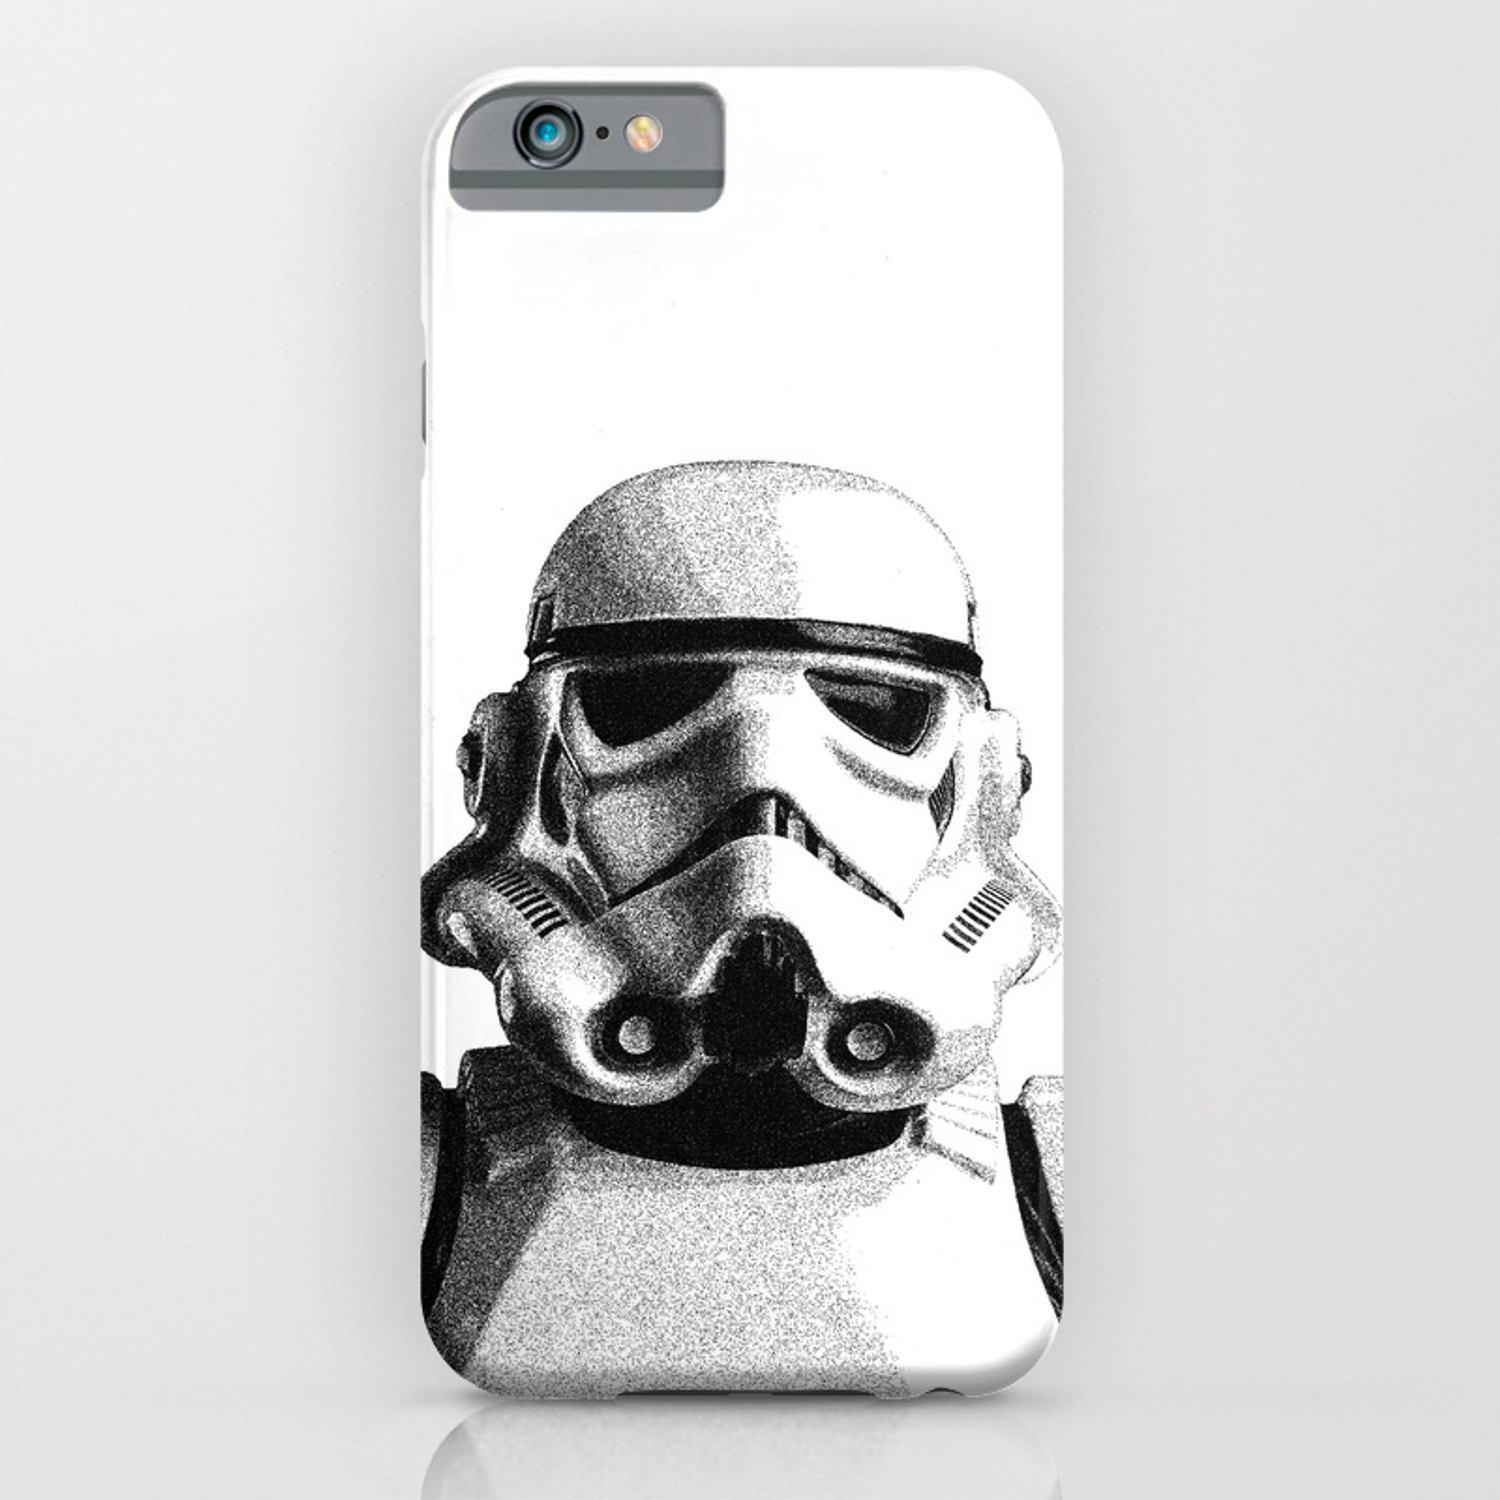 iphone 7 cases star wars rogue 1